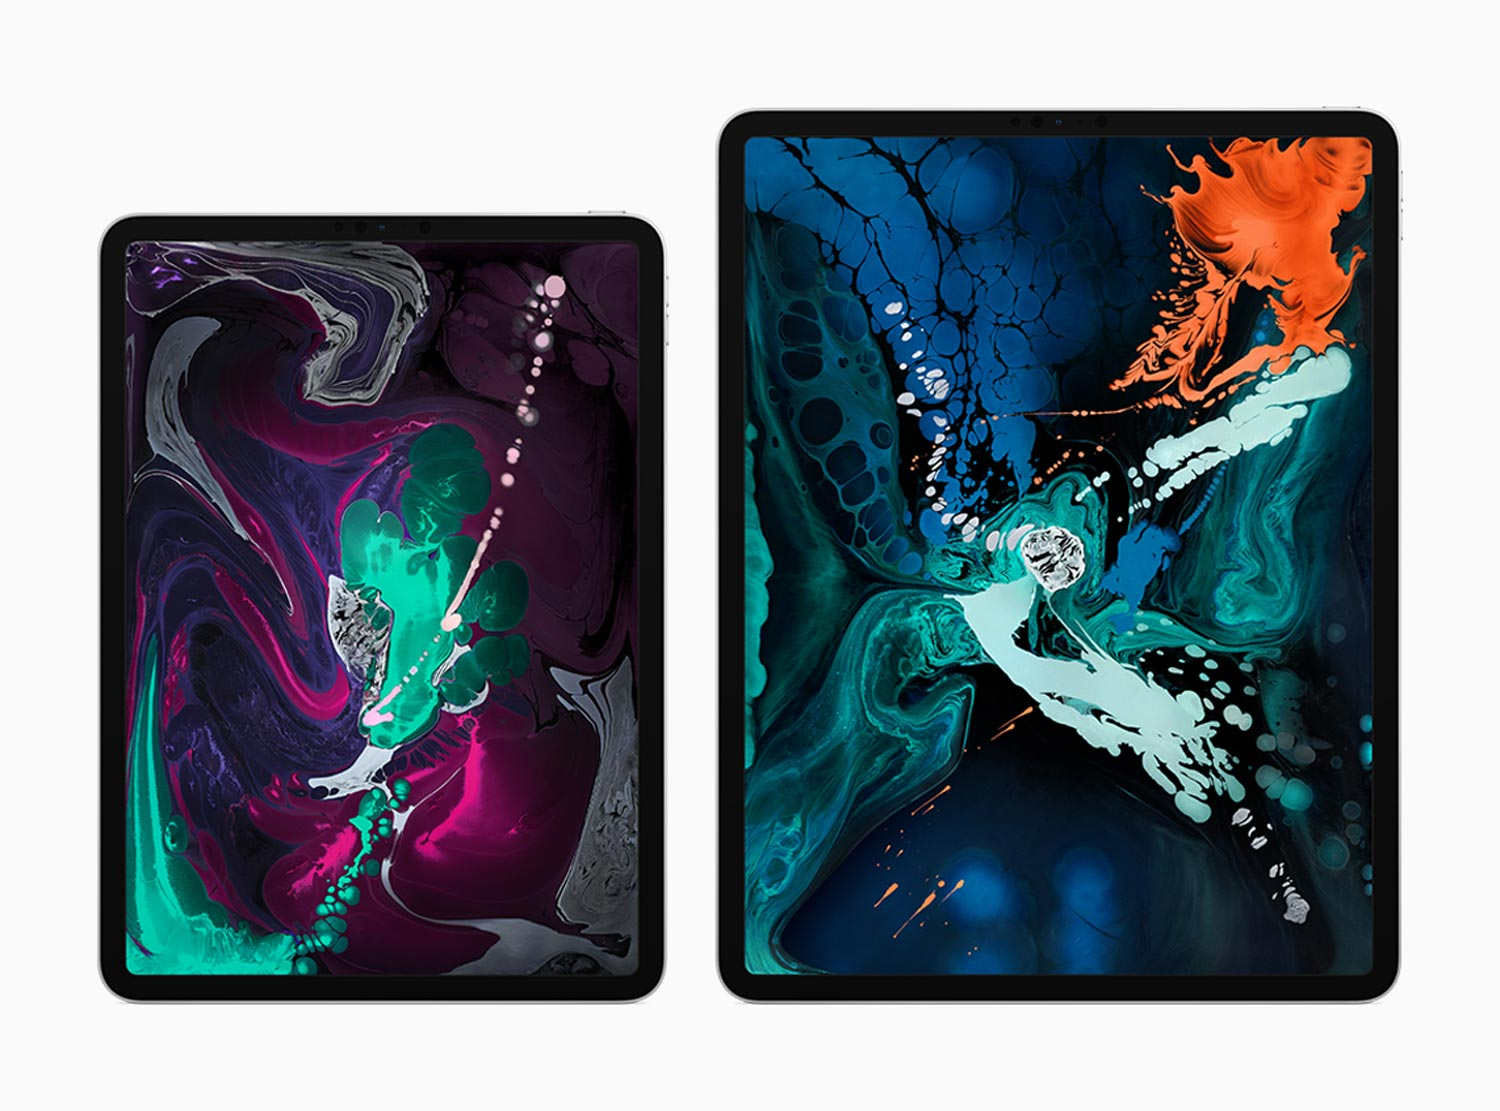 2018 iPad Pro 11 inch and 12 inch side by side